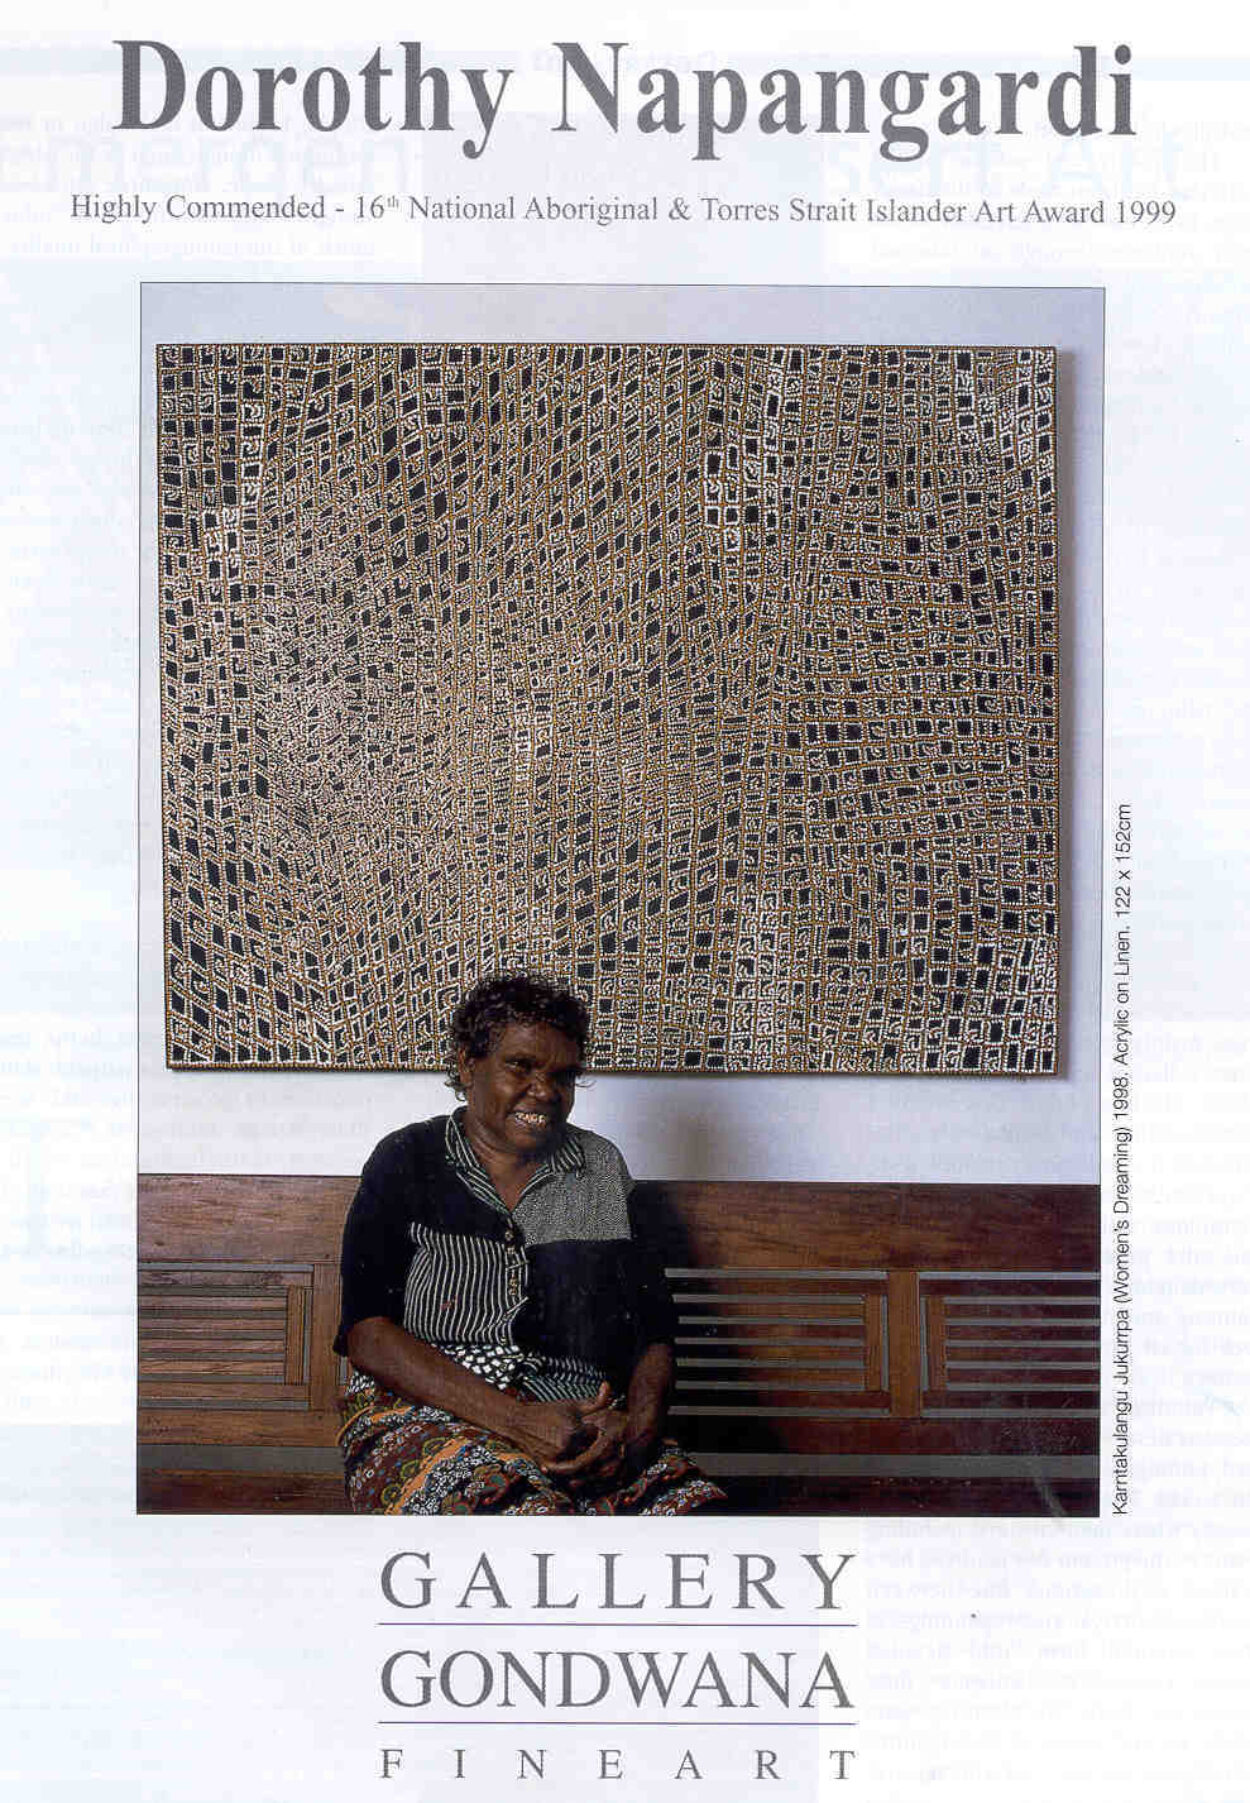 Dorothy Napangardi - Highly Commended - 16th National Aboriginal & Torres Strait Islander Art Award 1999 © Gallery Gondwana